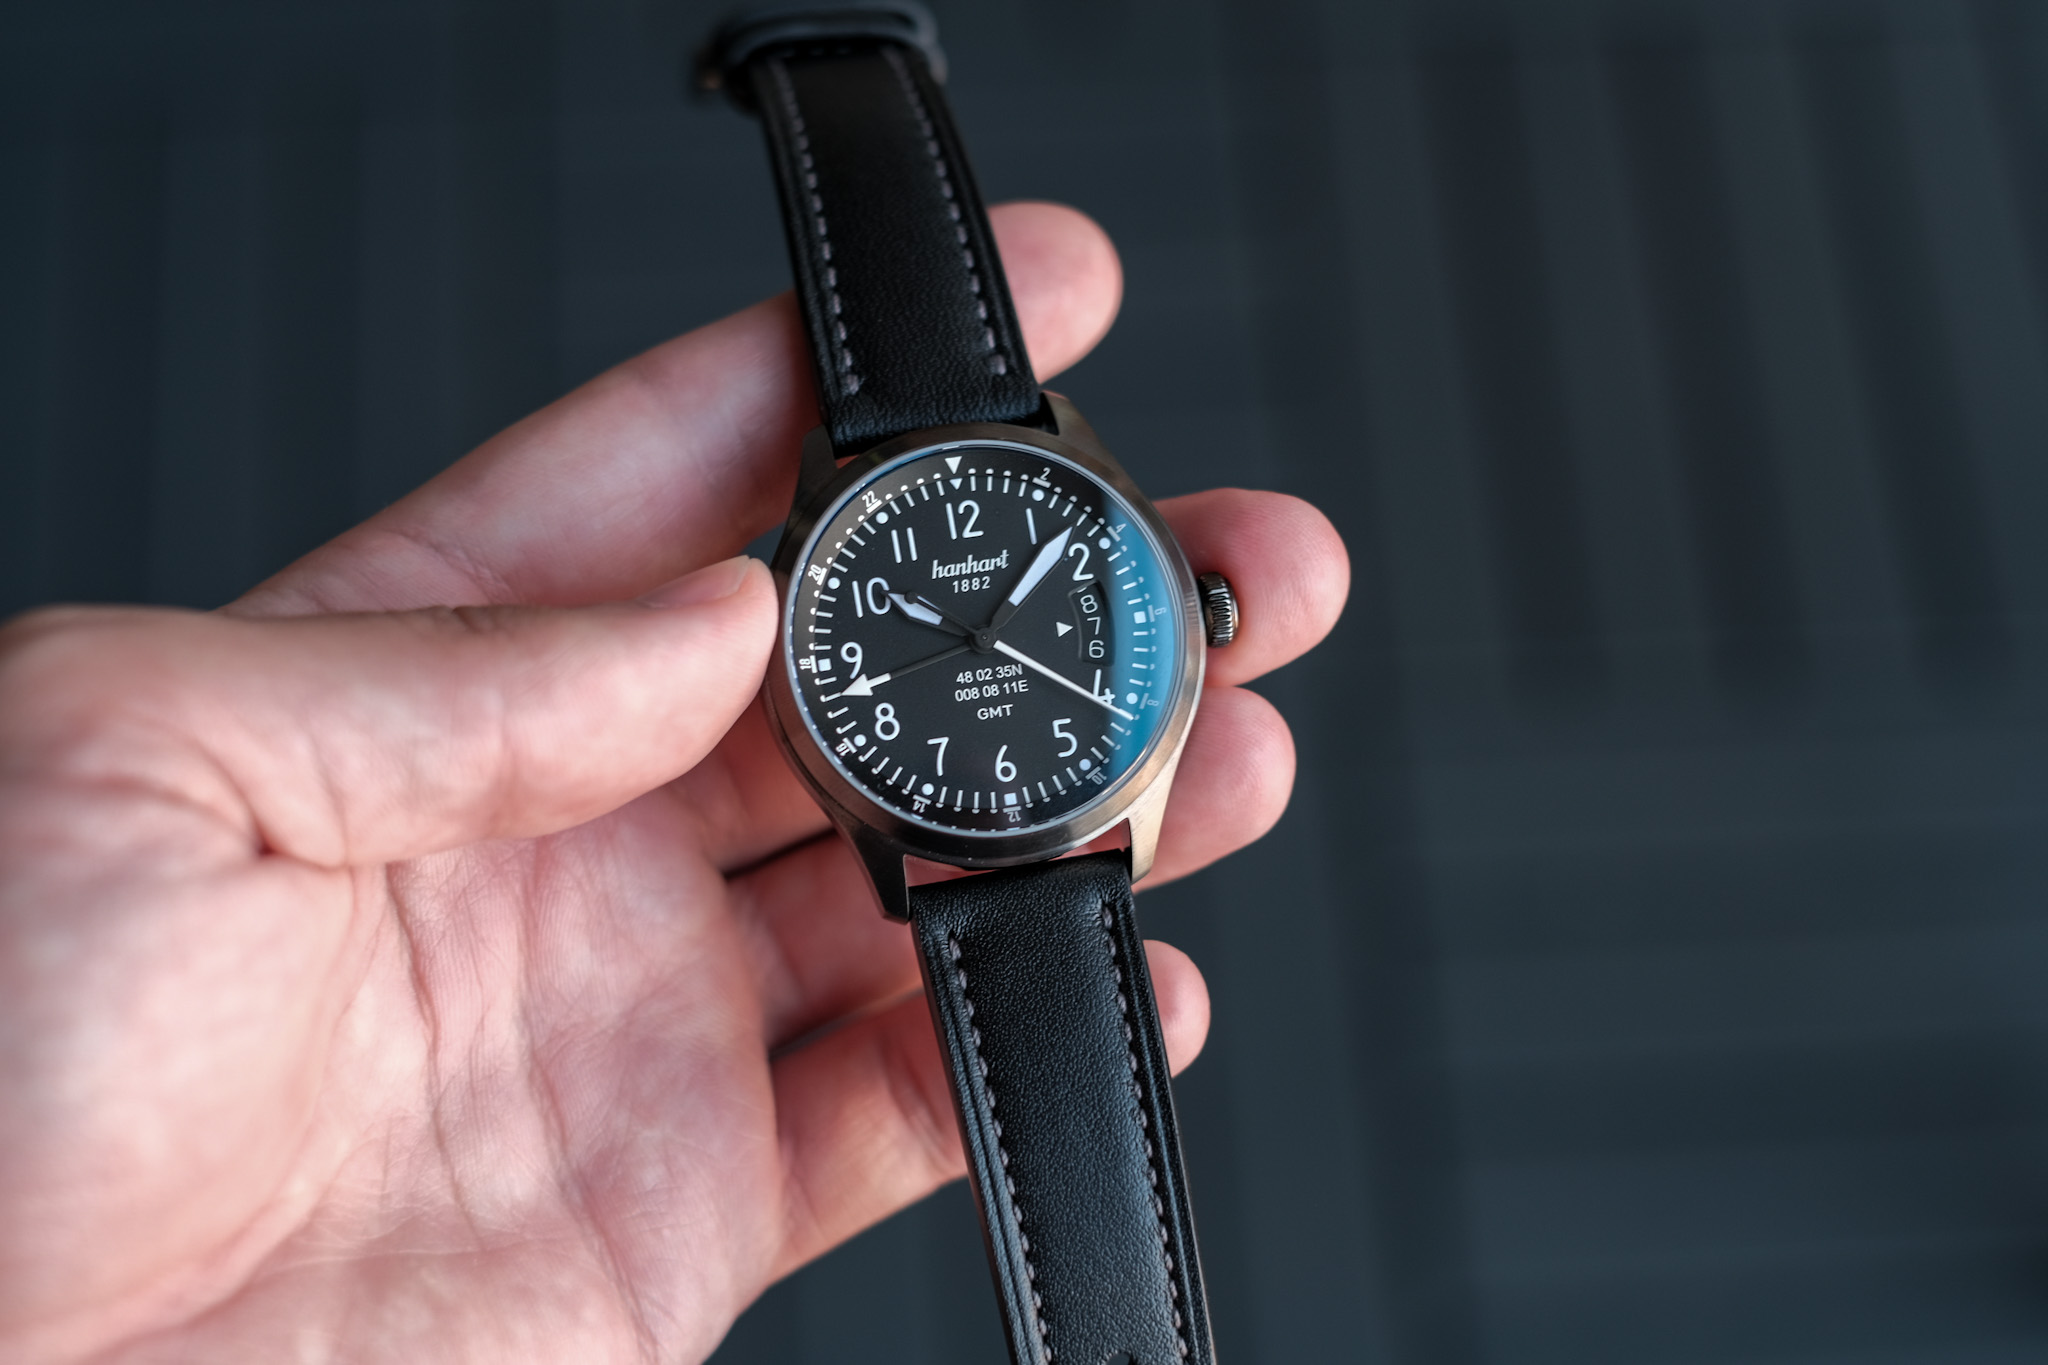 Hanhart S-Series S 105 OE GMT Watch Review